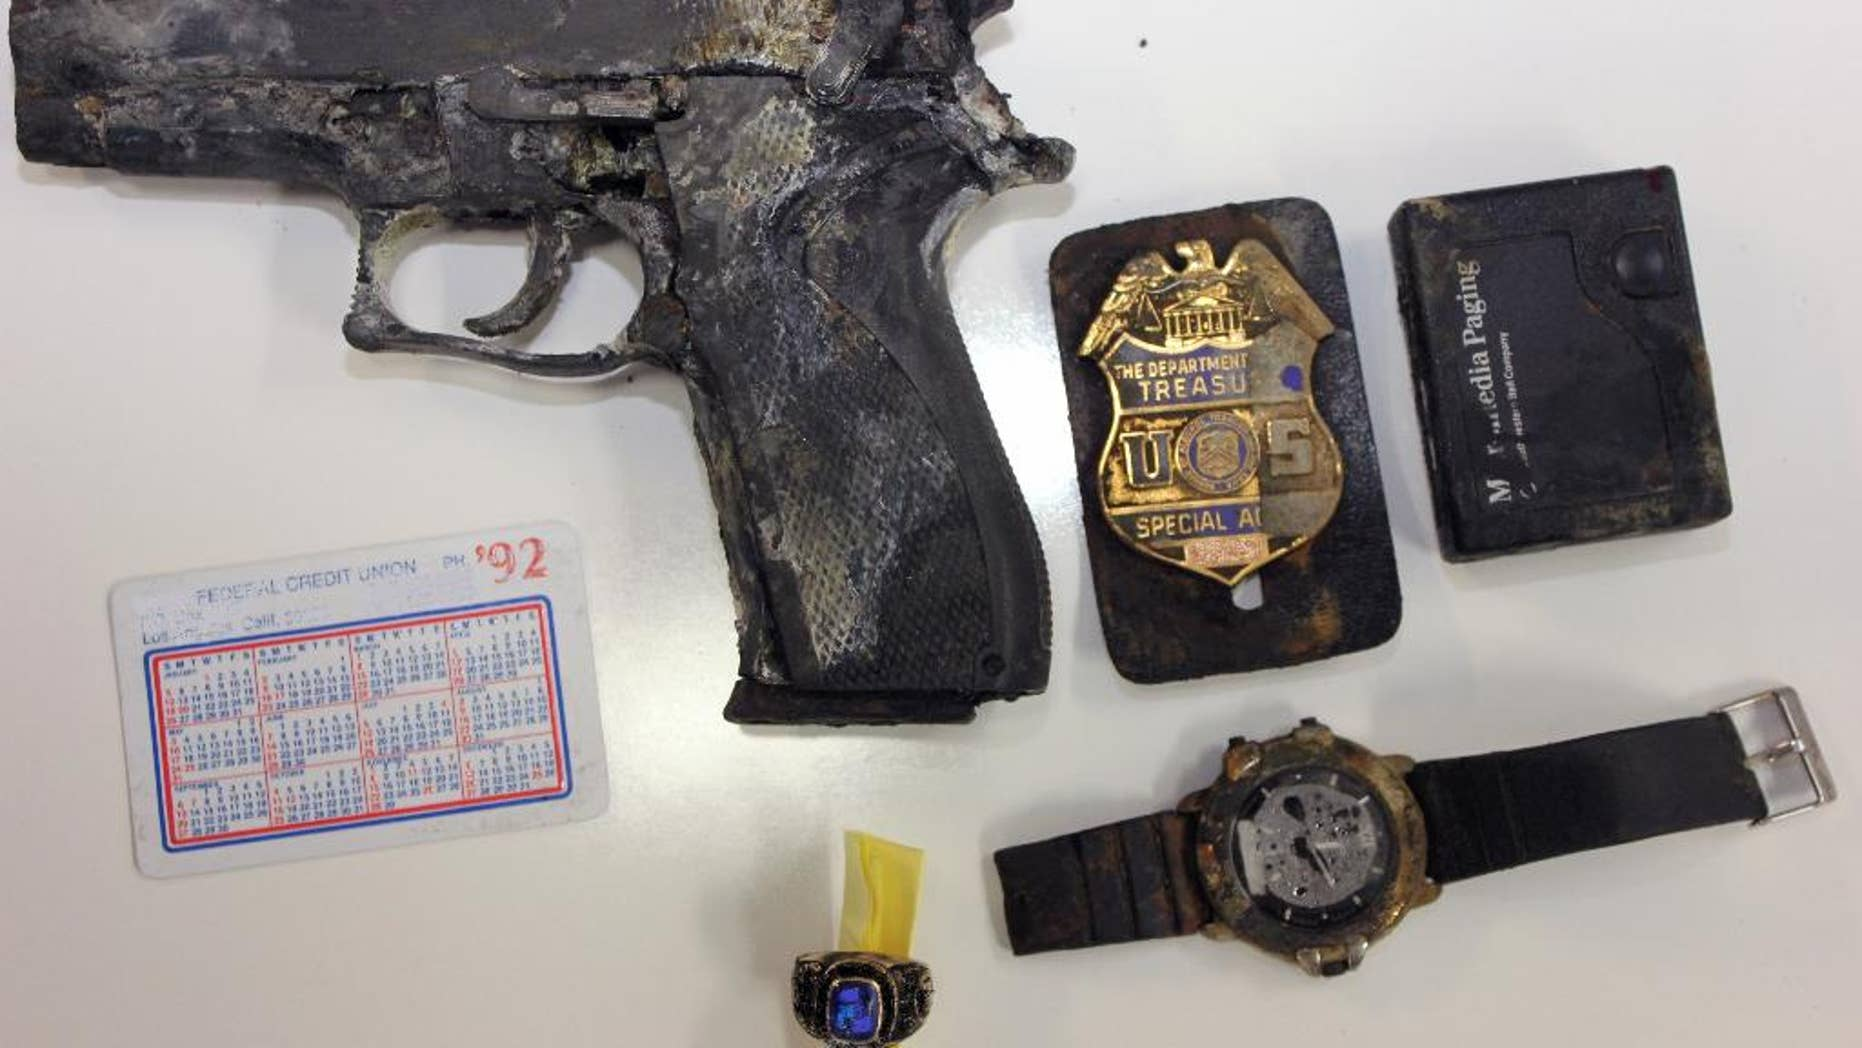 This undated photo provided by the Los Angeles County Sheriff's Department shows several items, including a handgun and badge of a federal agent, found in a backpack in shallow water by a man fishing at Castaic Lake in northern Los Angeles County. The agent said he got grief from his co-workers after his backpack went overboard during a 1992 boat trip, according to the Los Angeles Times. (AP Photo/ Los Angeles County Sheriff's Department)